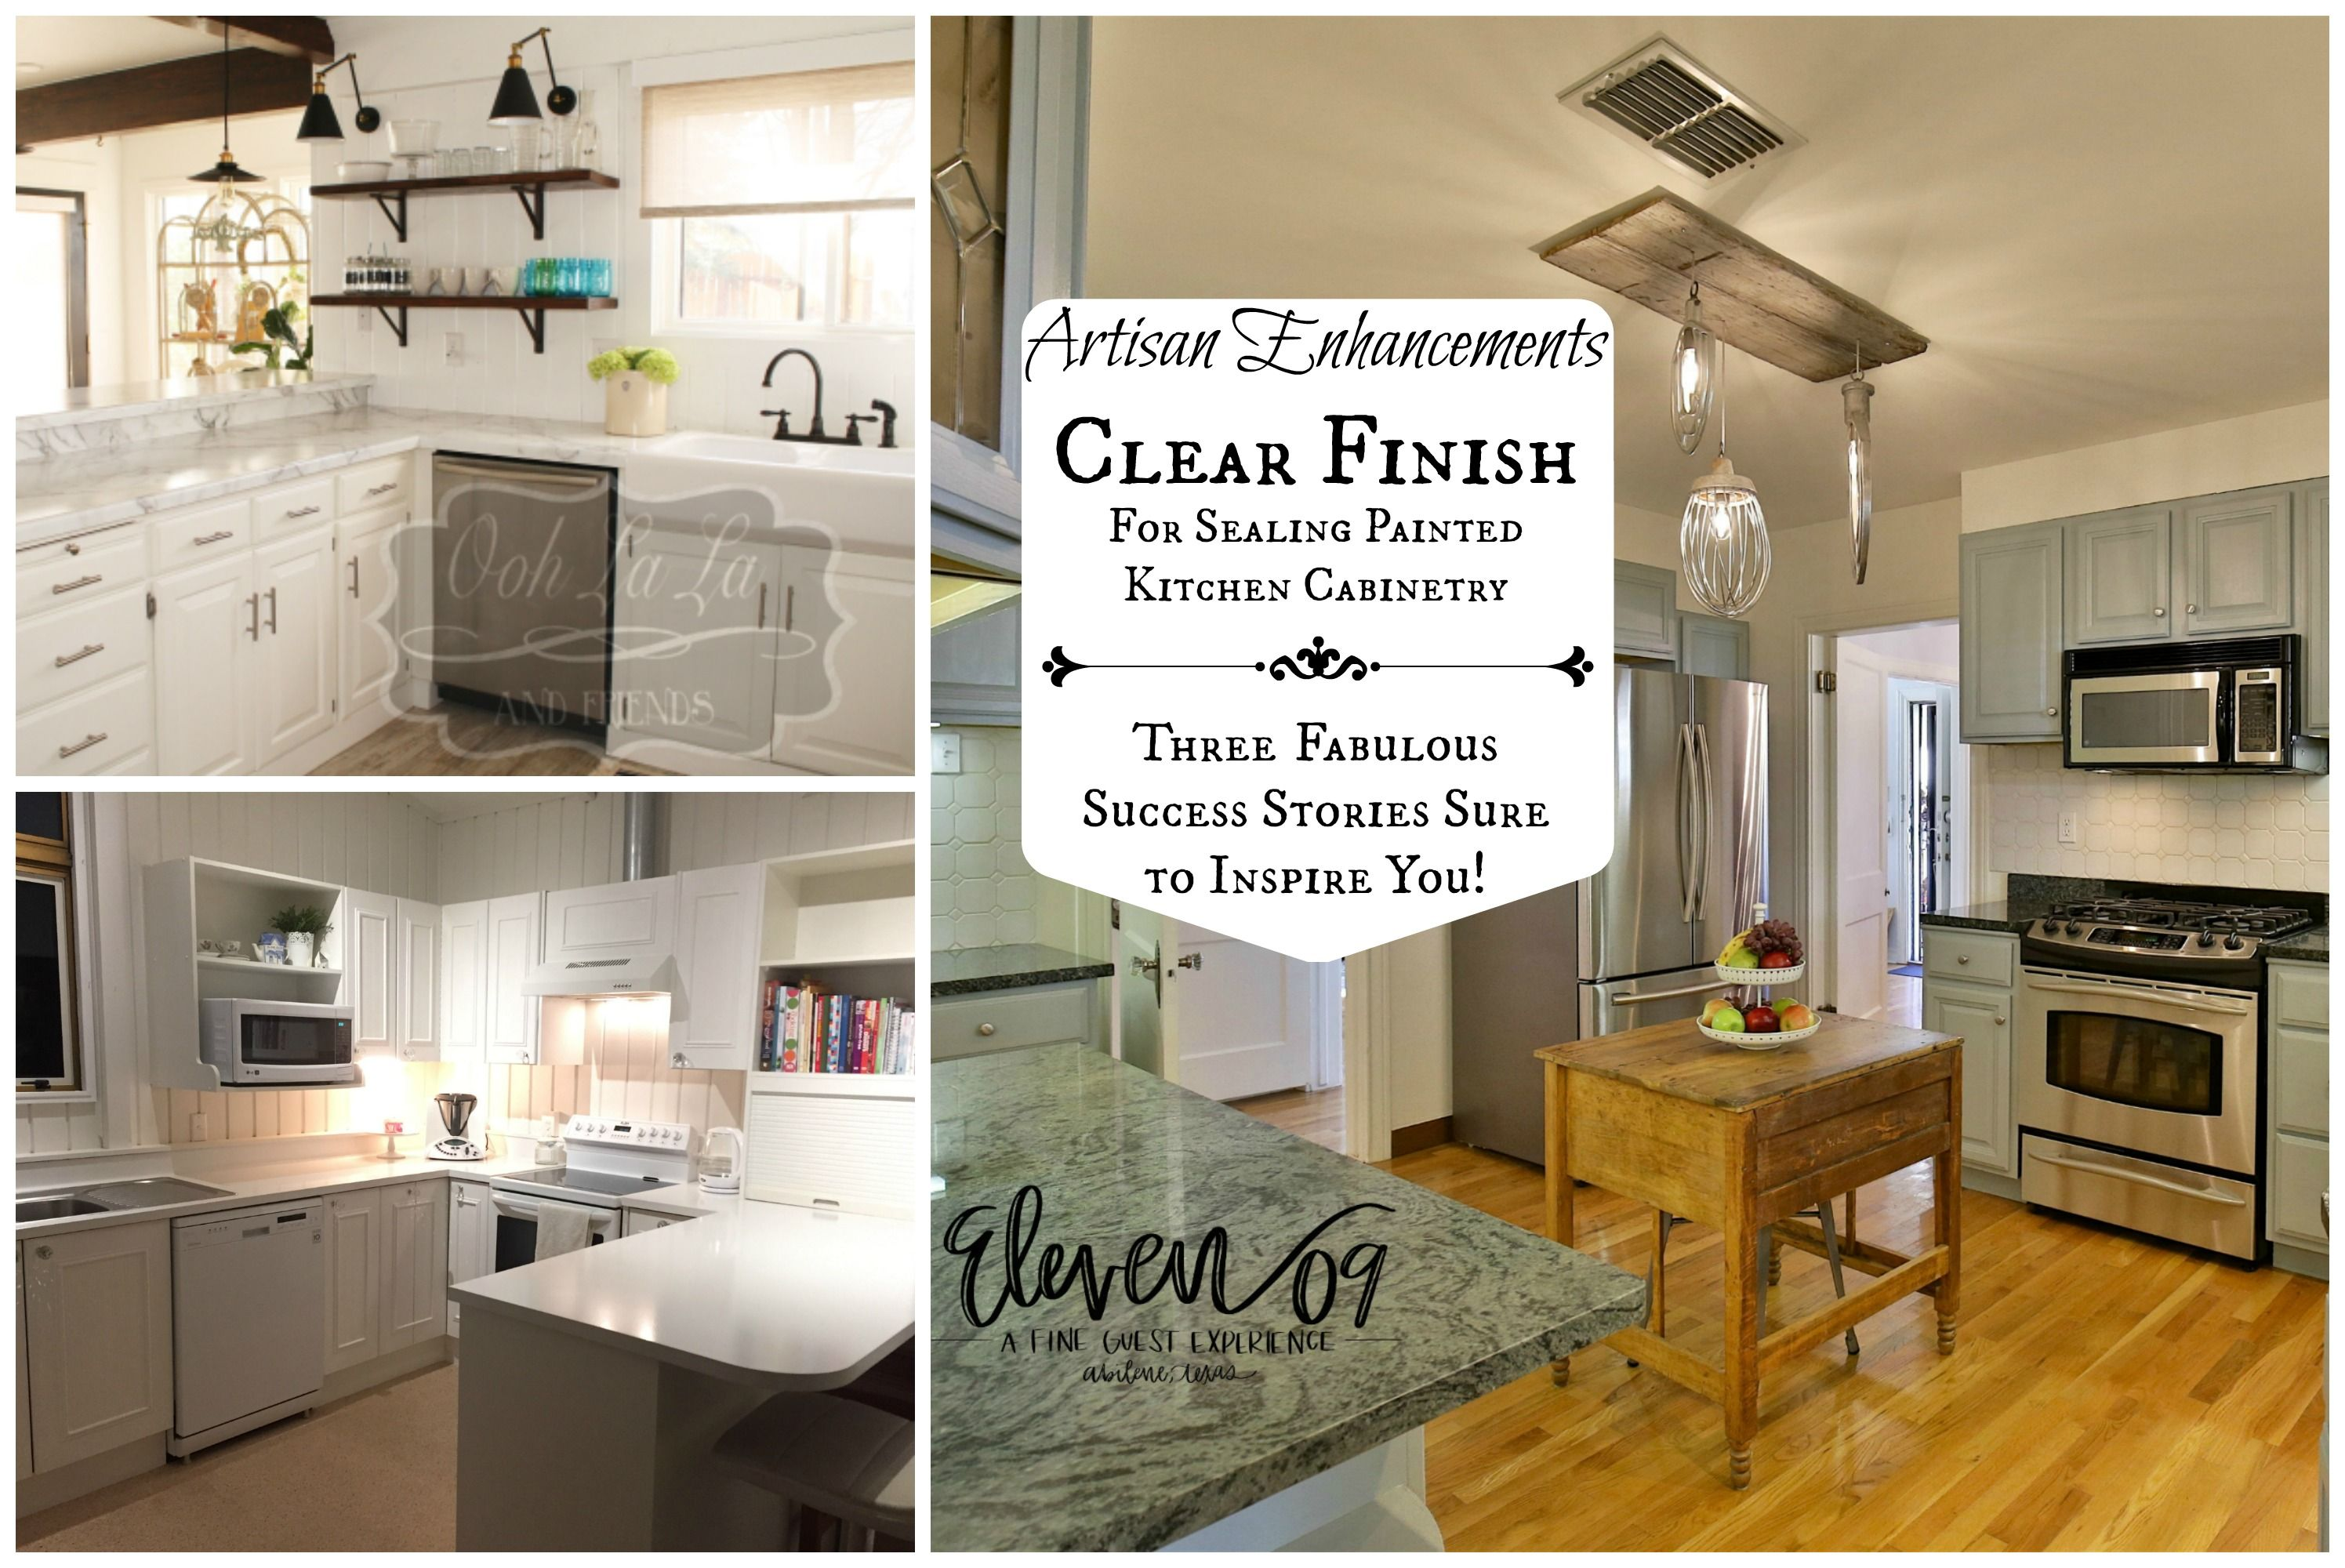 Artisan Enhancements Clear Finish For Sealing Kitchen Cabinetry Artisan Enhancements Kitchen Cabinet Styles Beautiful Kitchen Cabinets Kitchen Paint